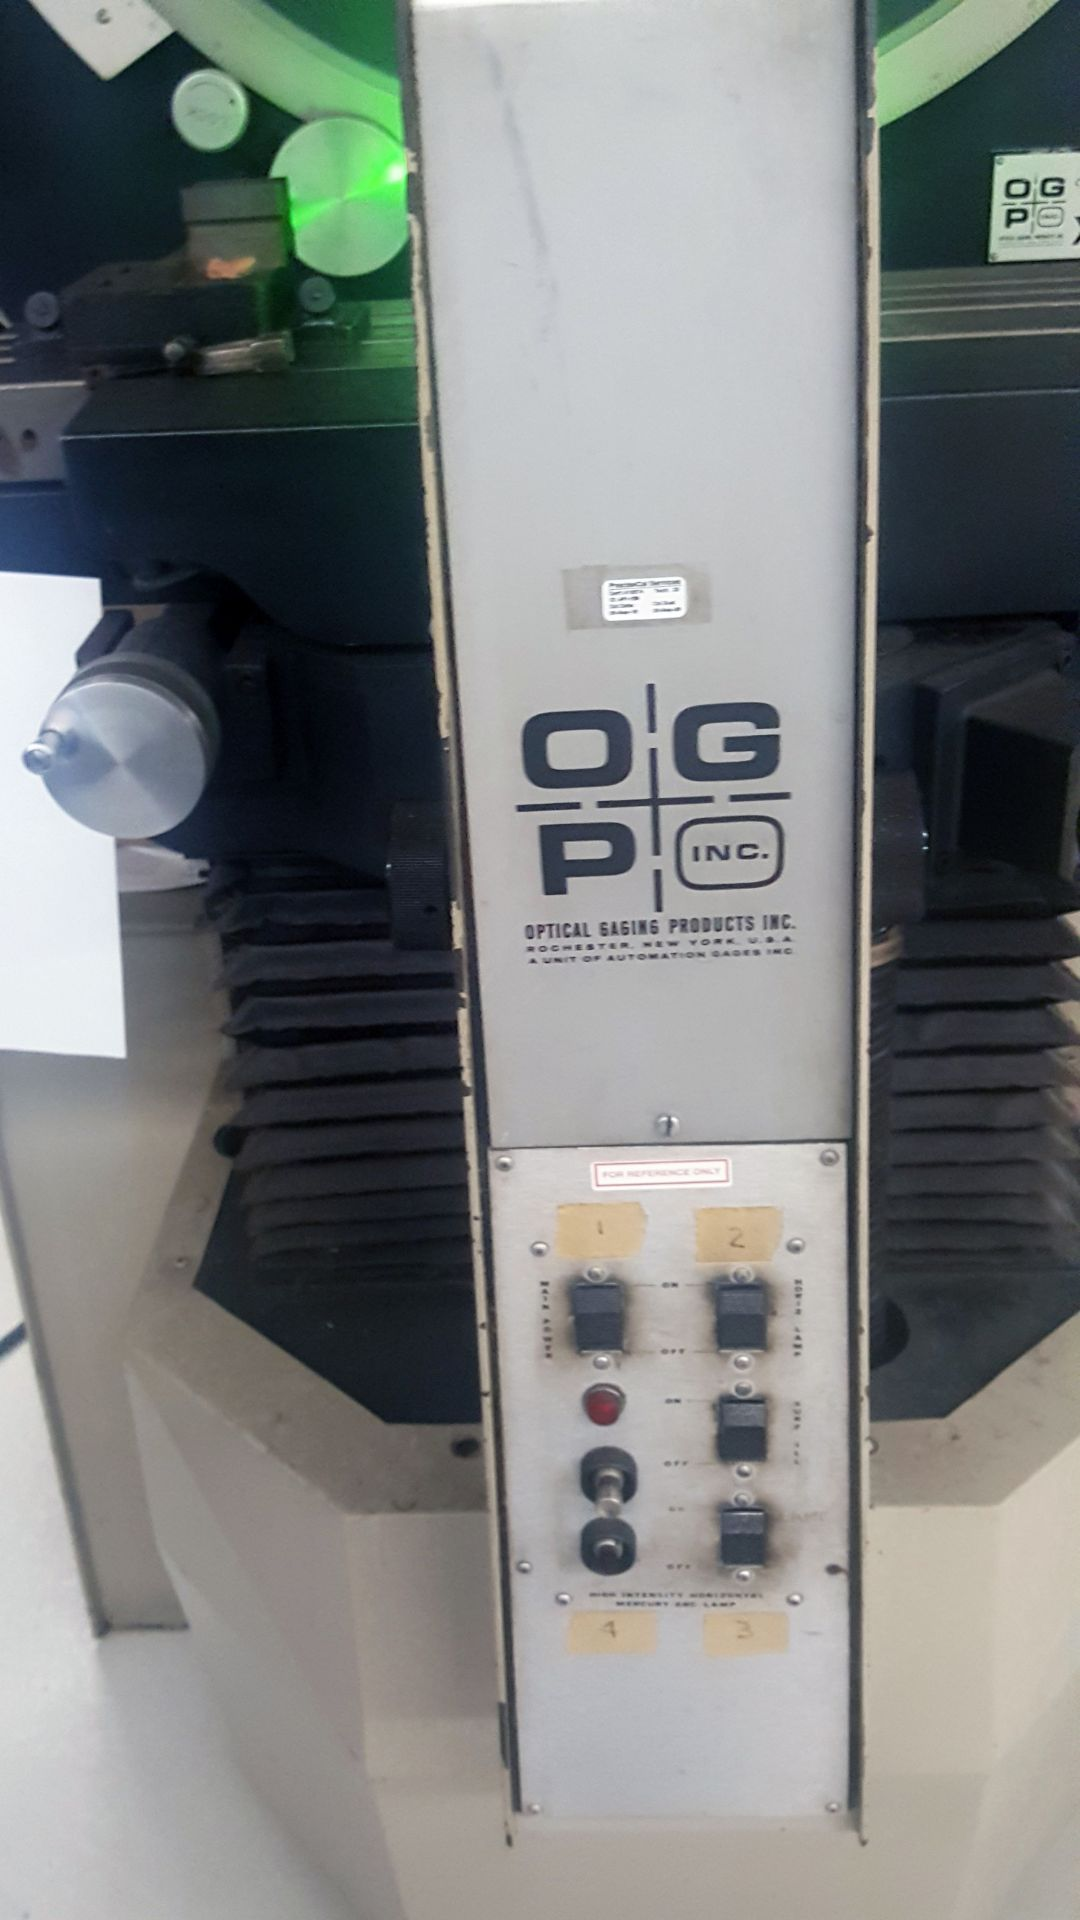 "OGP 30"" Optical Comparator Projector, Model IXL-827, XL30S, S/N 8270292, under power - Image 5 of 8"